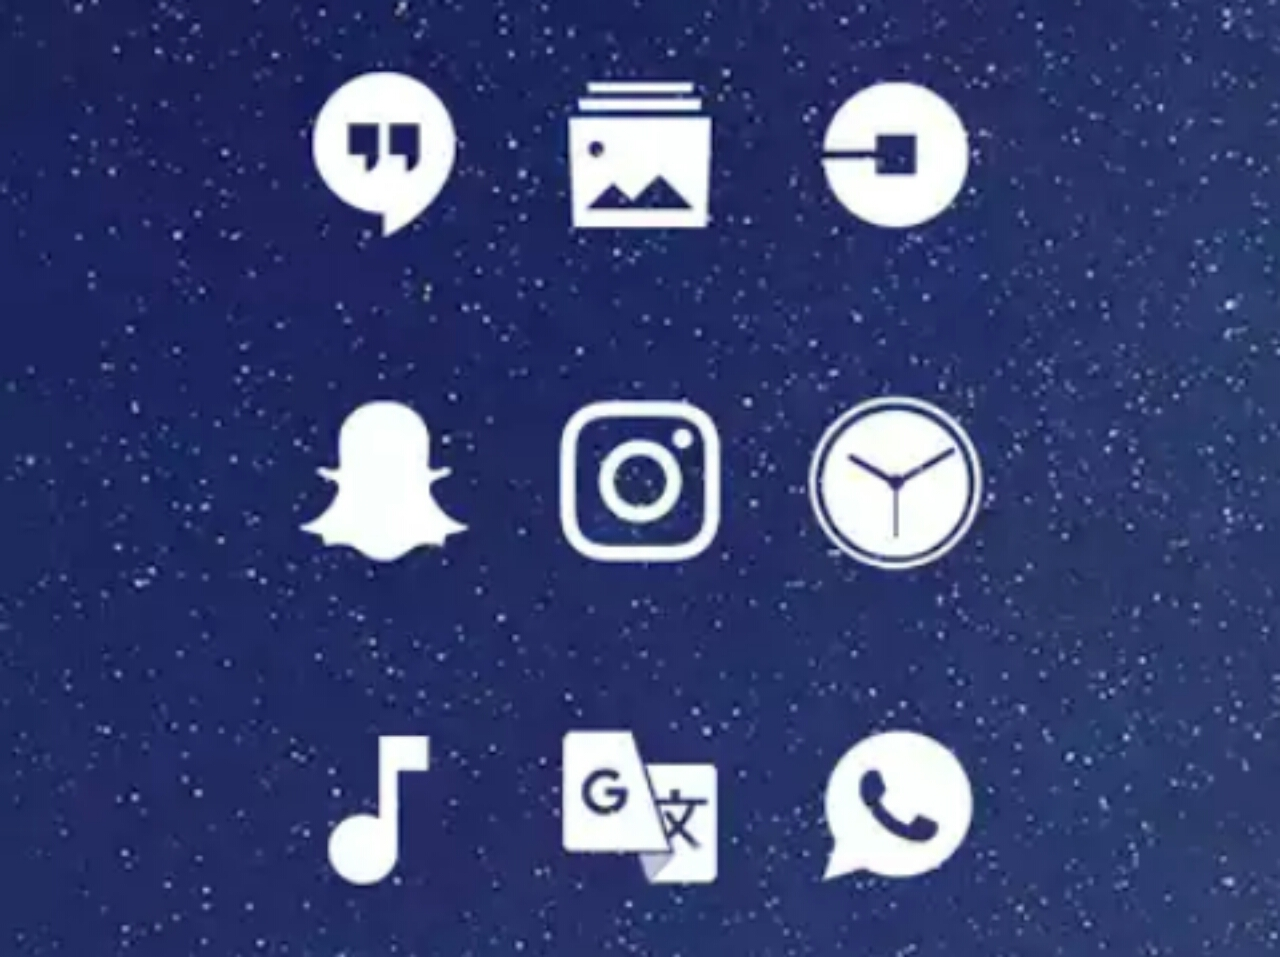 Whicons icon pack